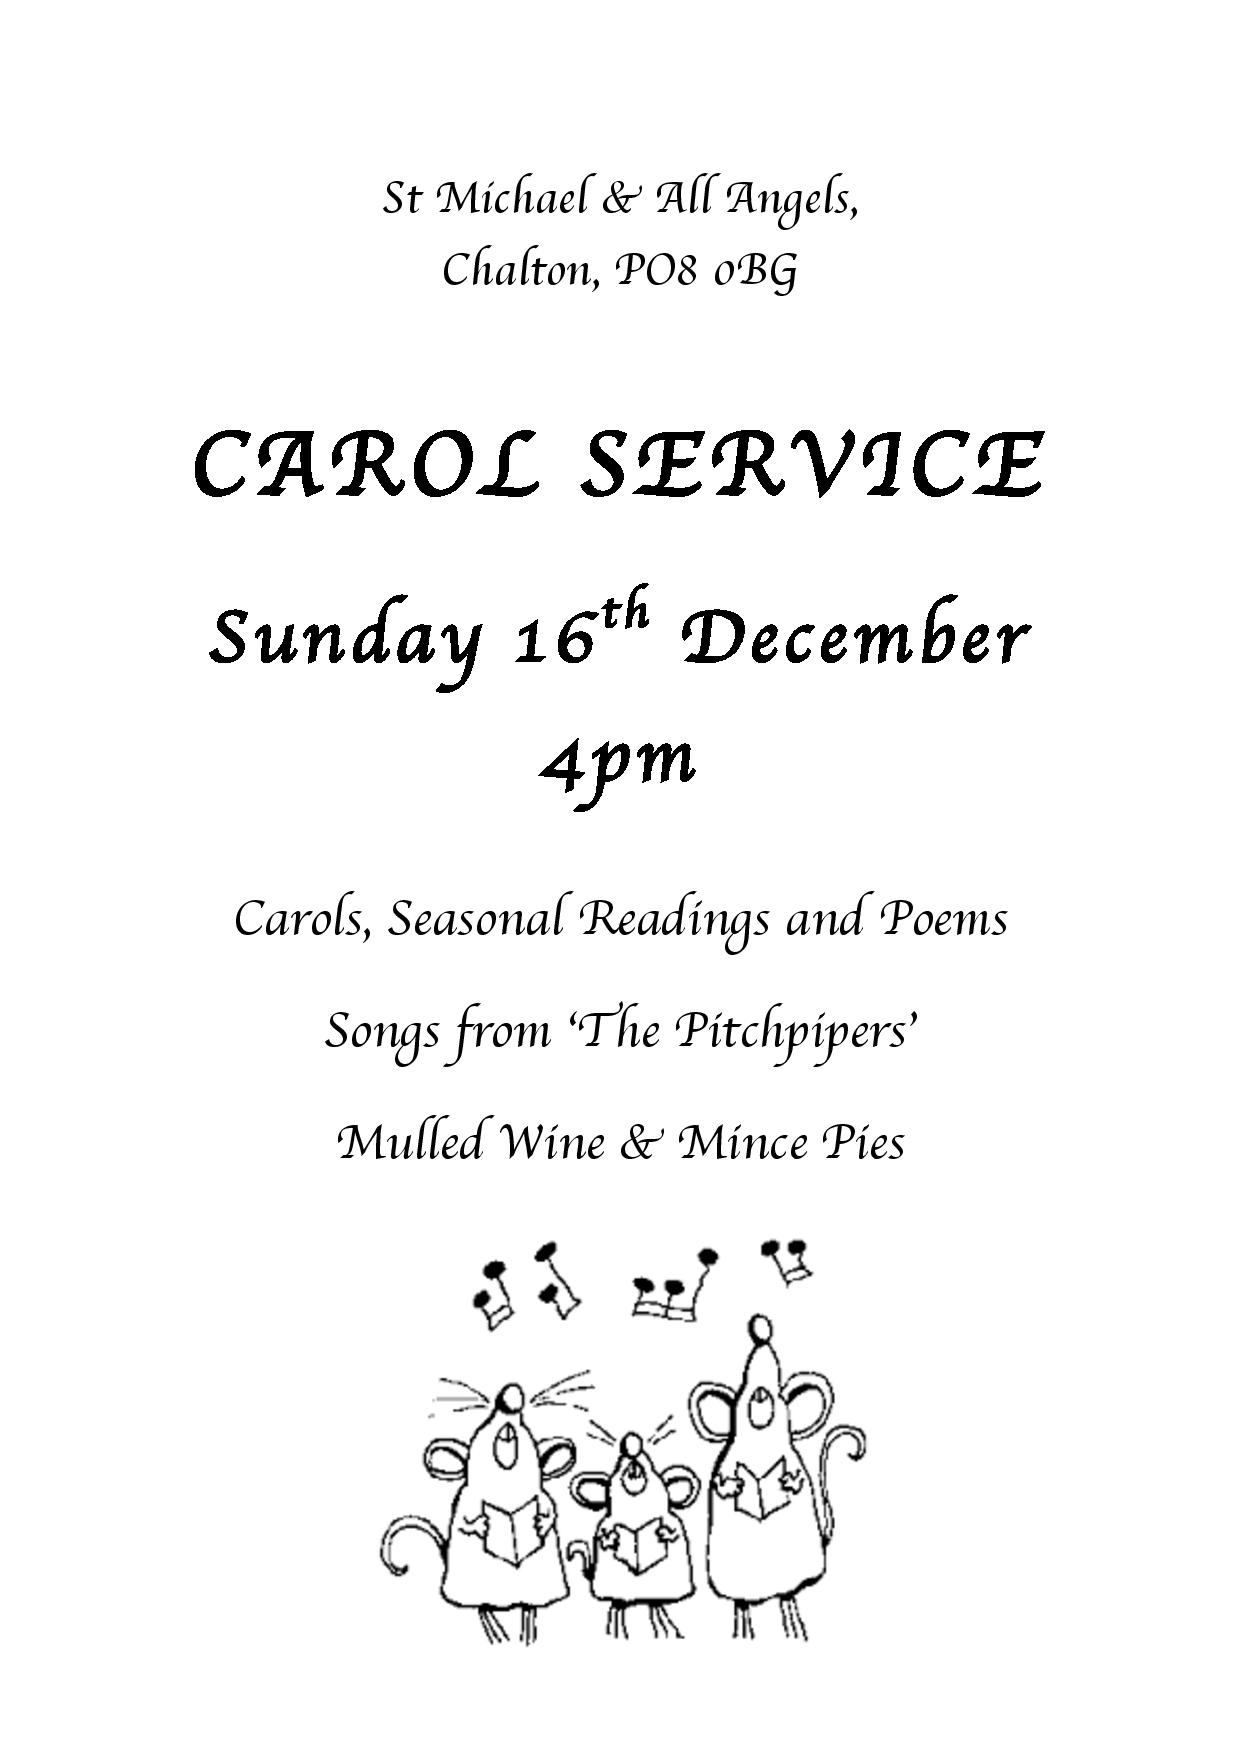 Christmas Carol at St Michael and All Angels Church, Chalton